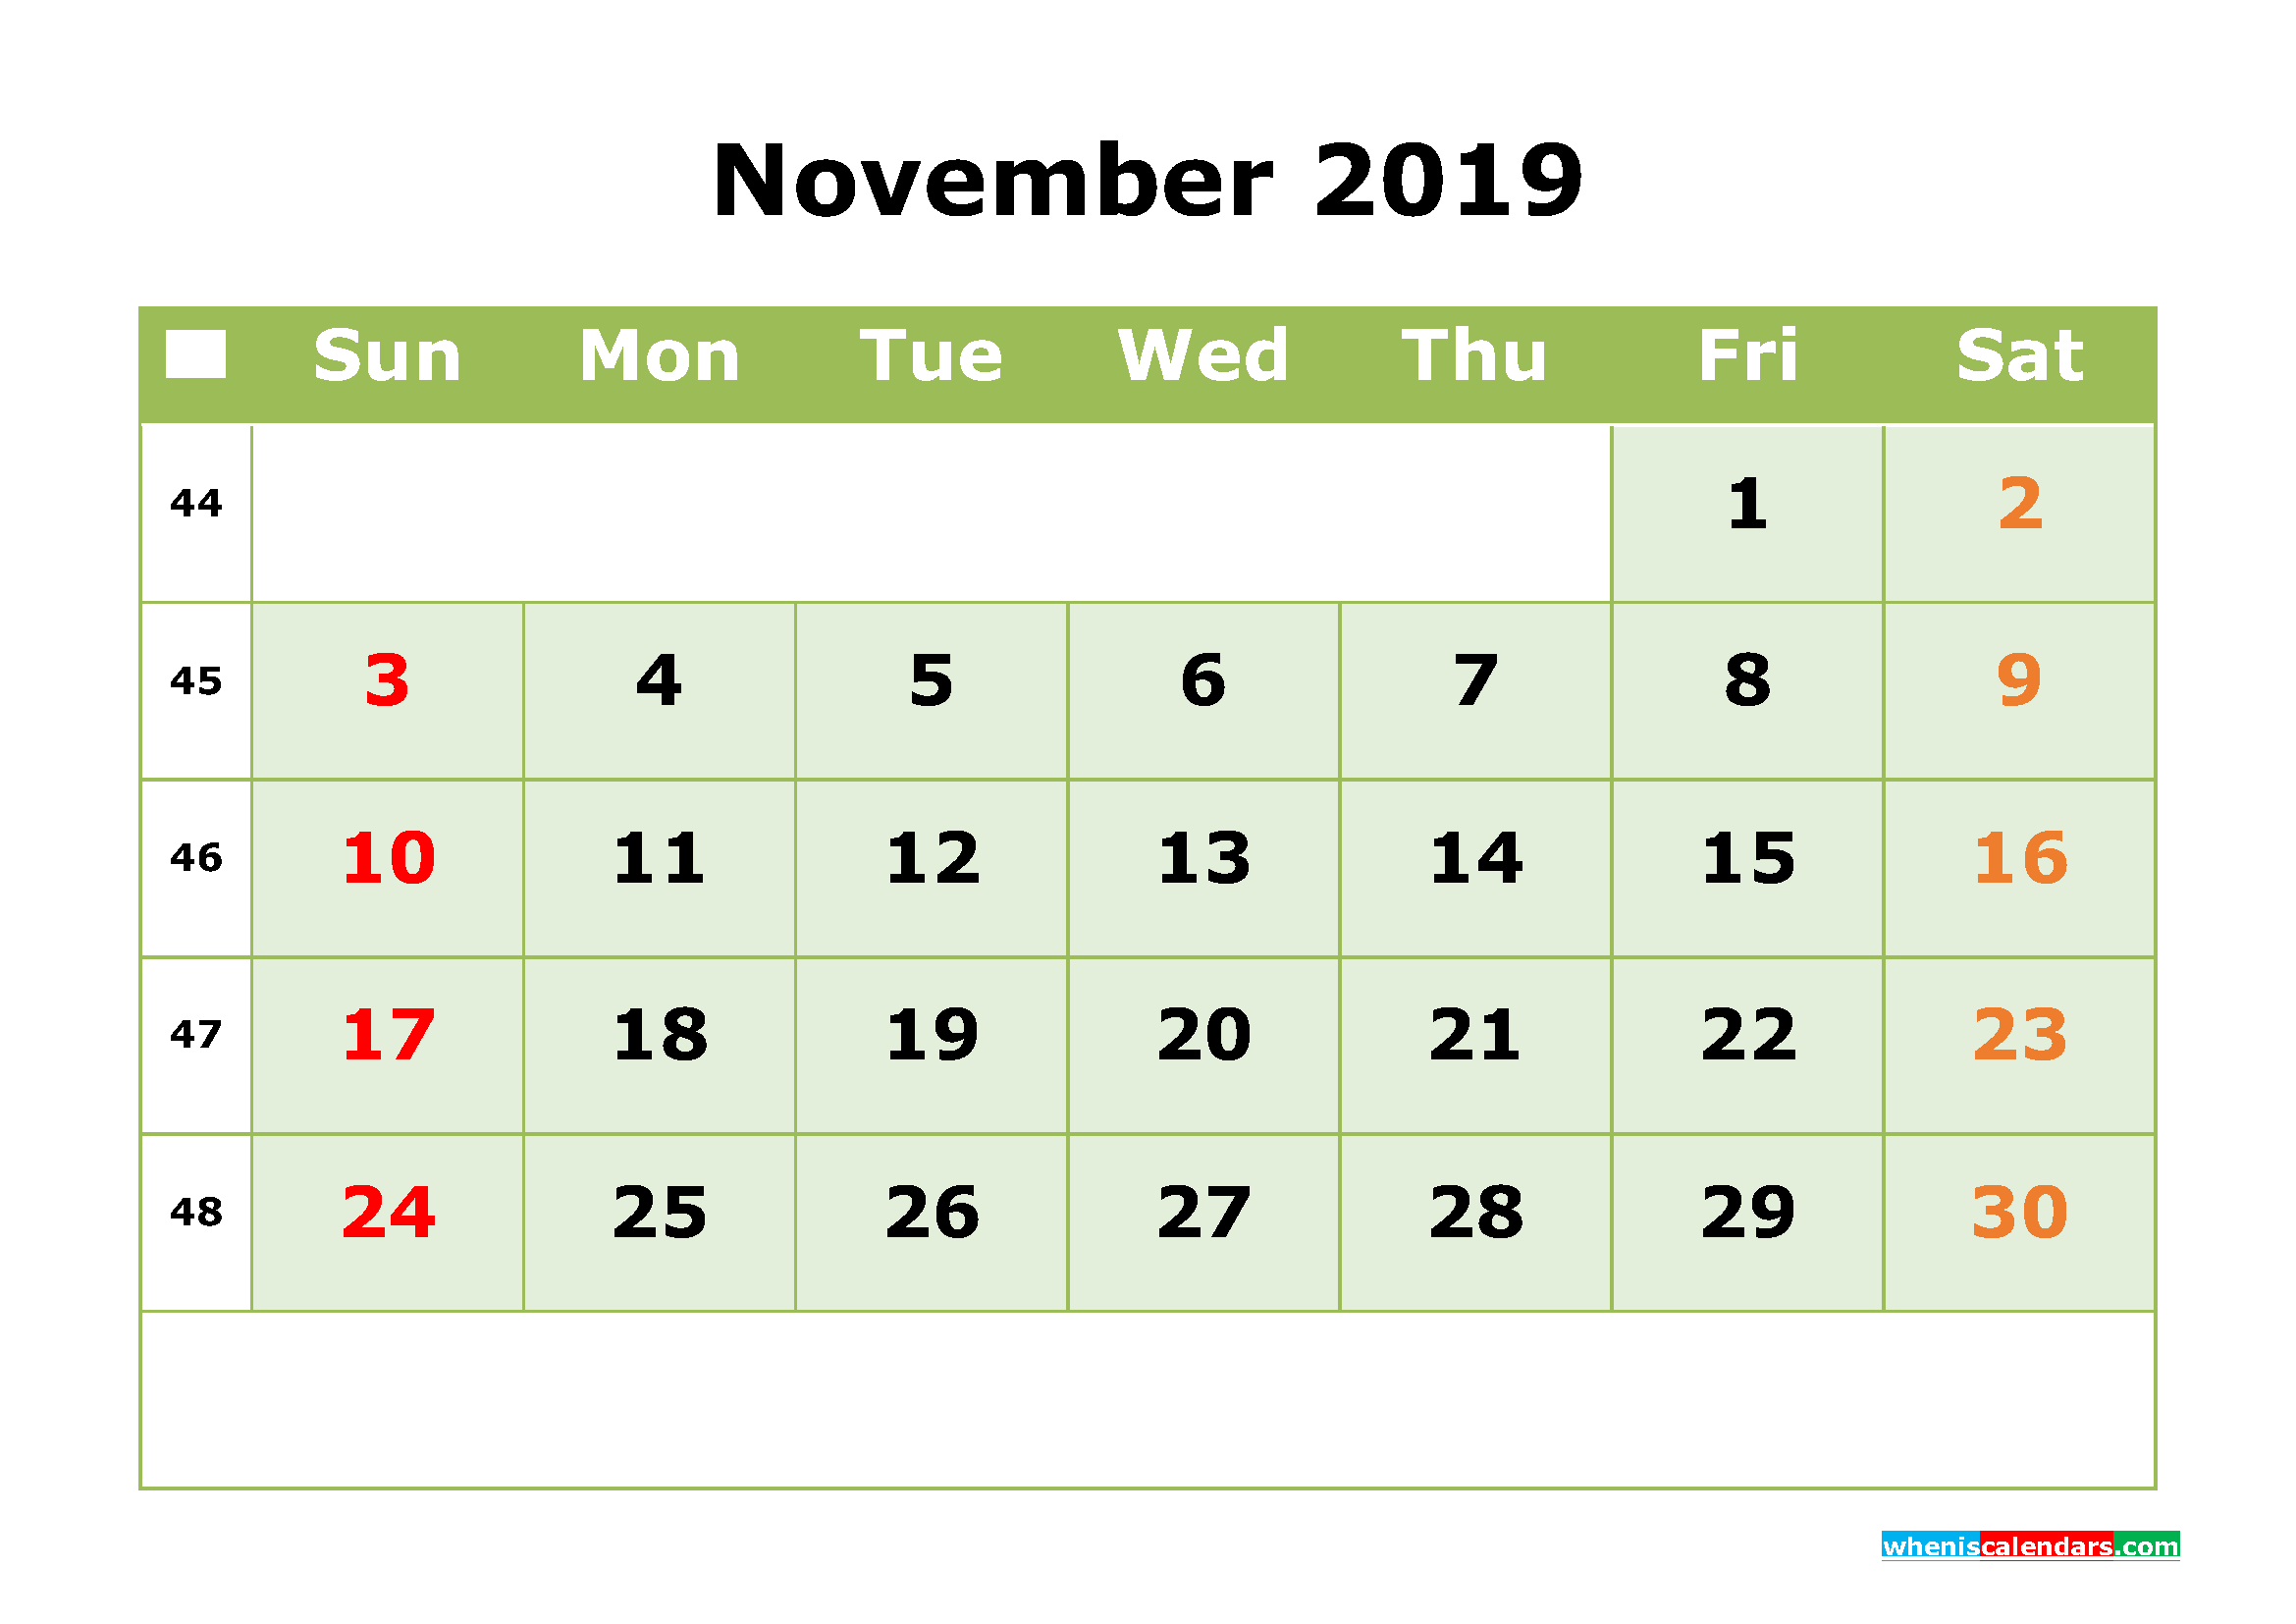 November 2019 Printable Calendar Month By Month Calendar Template